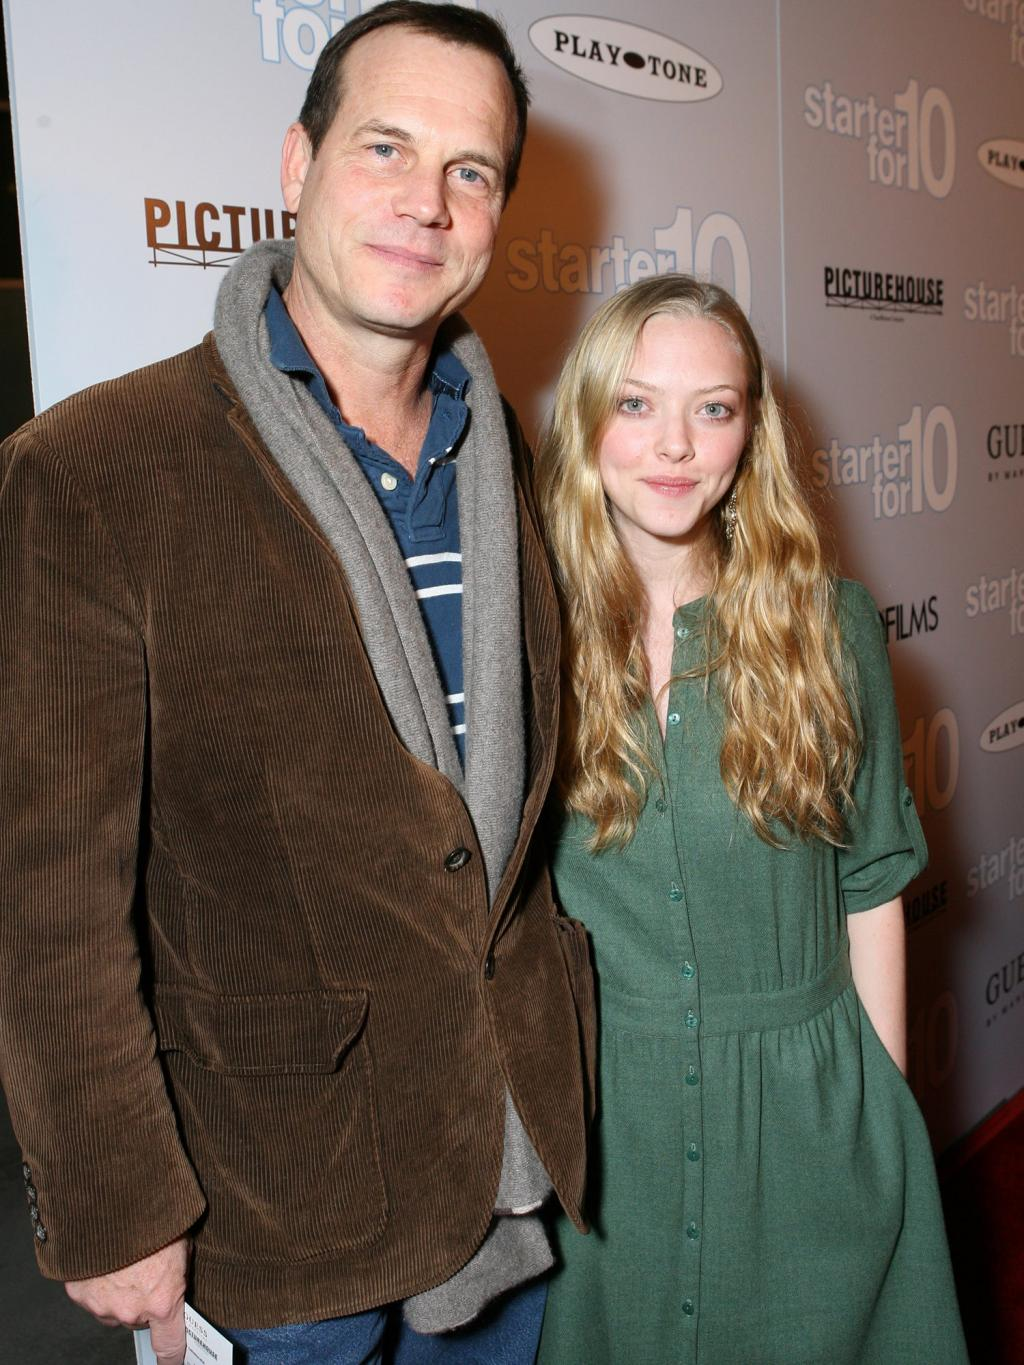 Amanda Seyfried Remembers Her        Father Figure      '  Bill Paxton as More Stars Honor the Late Big Love Star